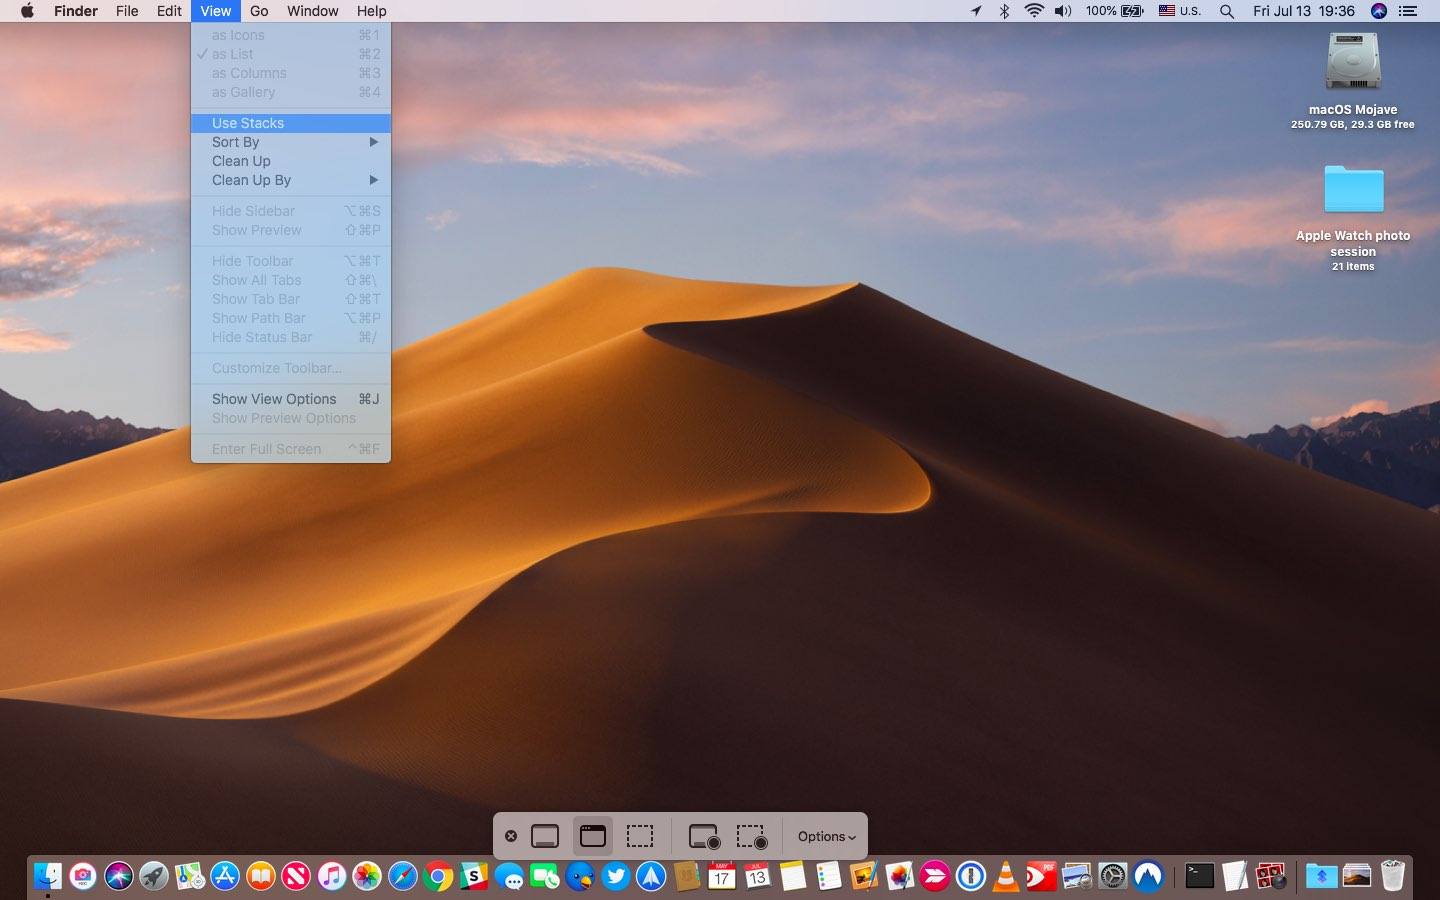 Take Mac screenshots - Use the selection Space bar method to screenshot menus as well